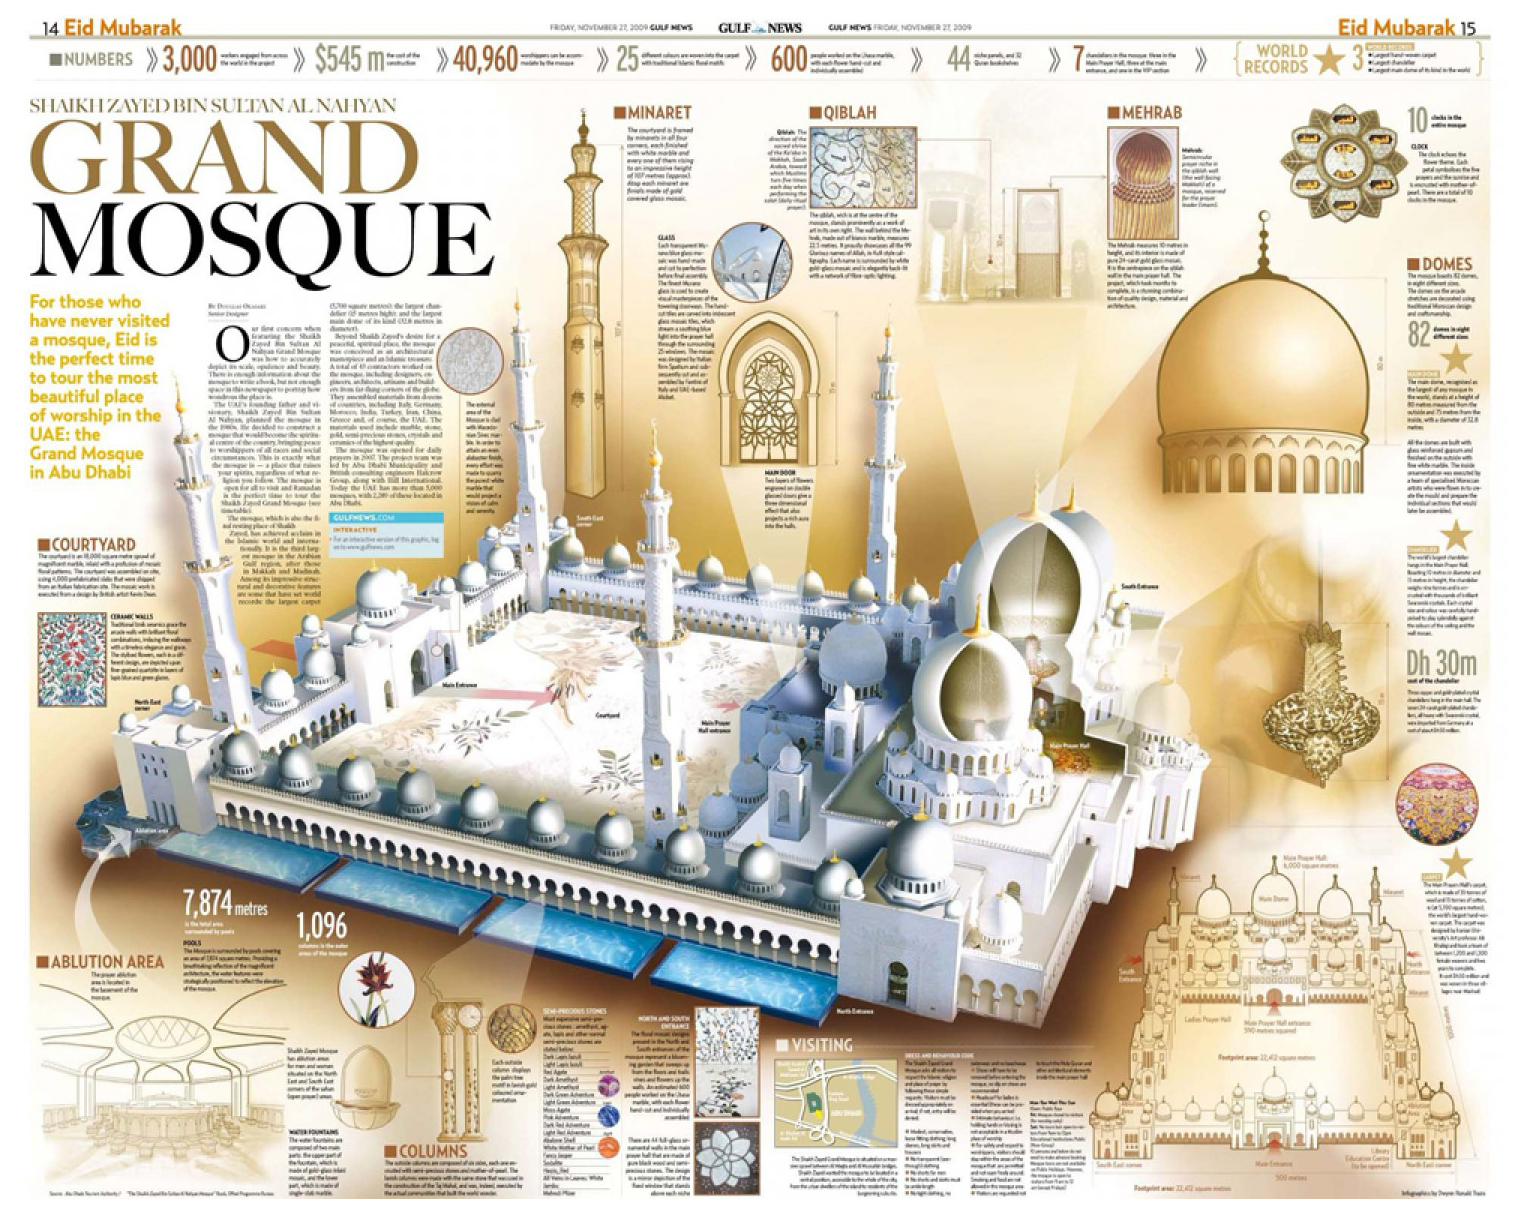 The Grand Mosque Sheikh Zayed Infographic